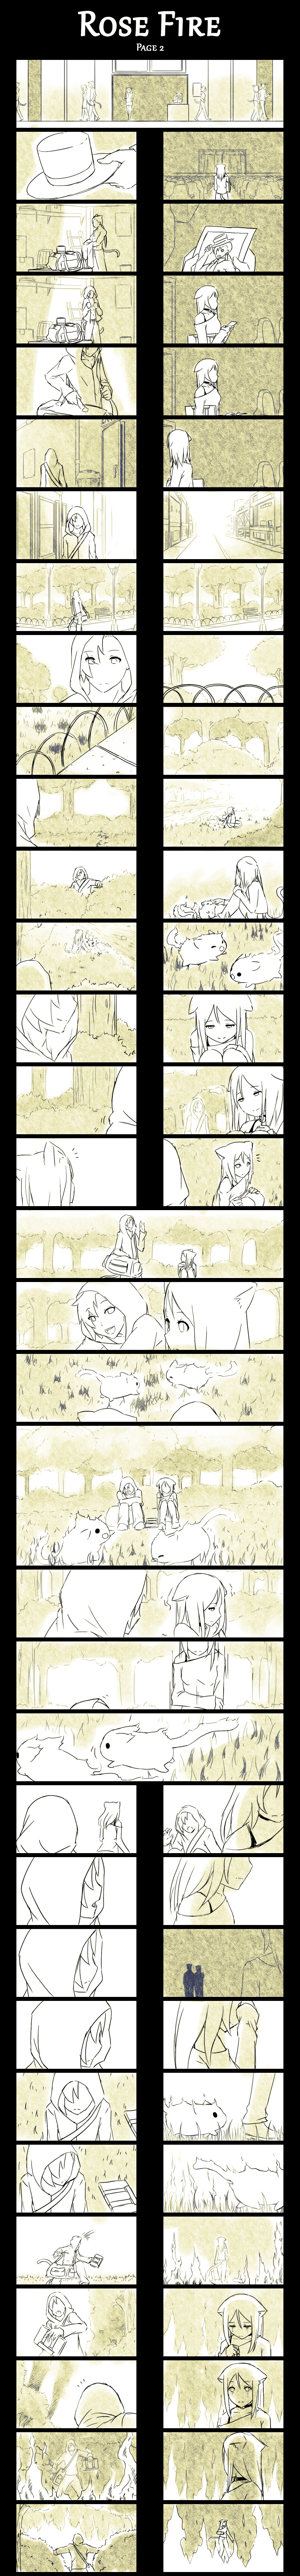 Rose Fire :Page 2: